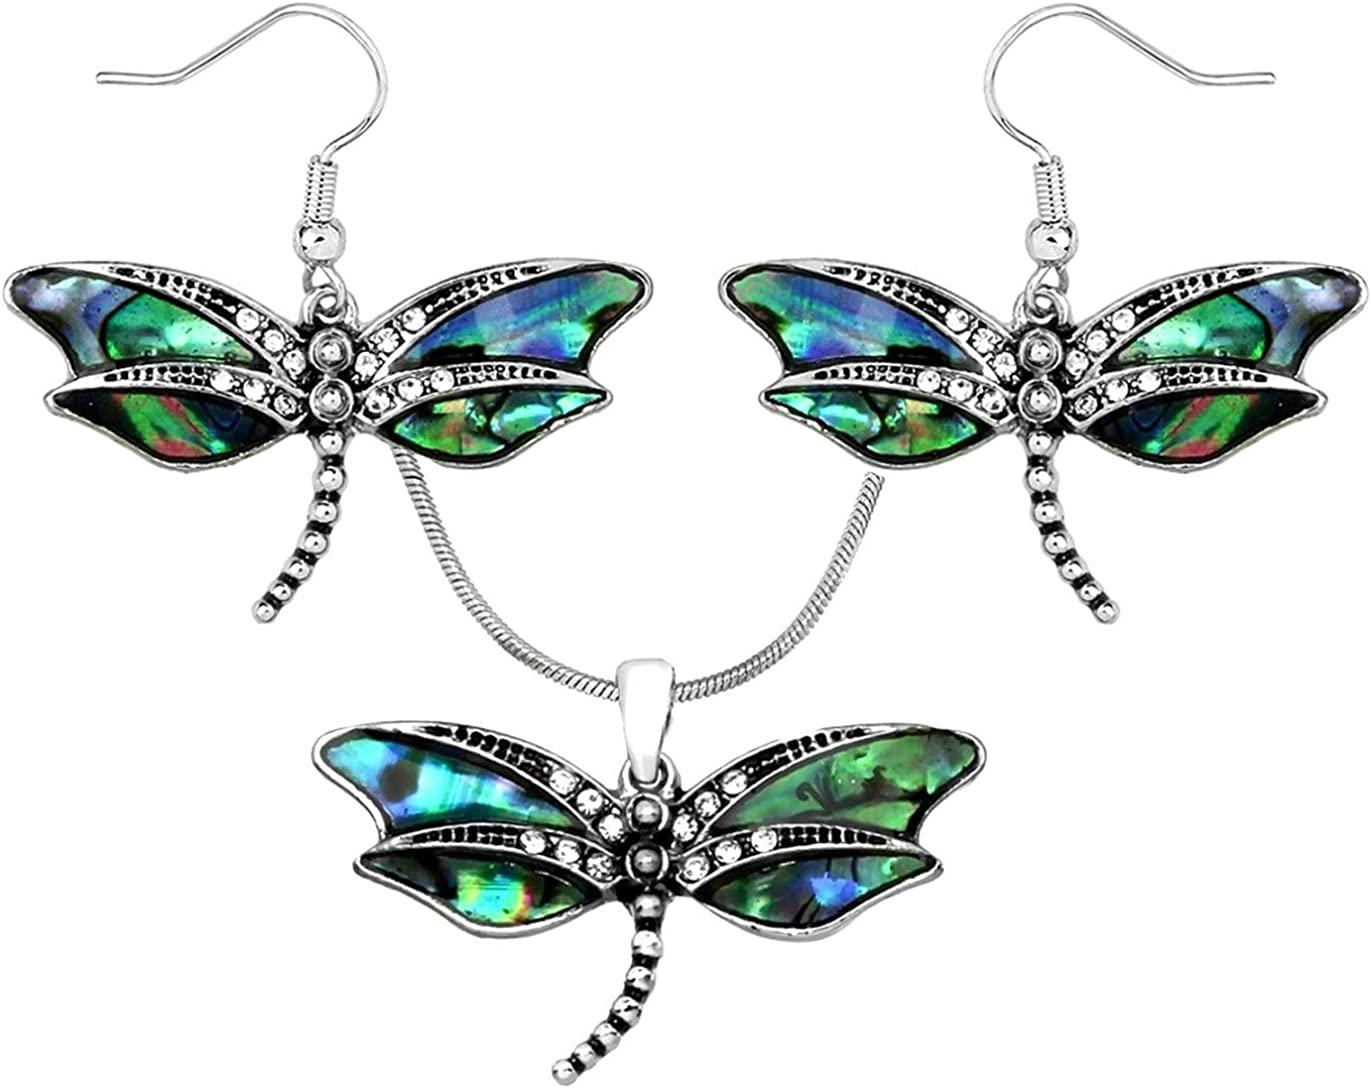 DianaL Boutique Stunning Dragonfly Pendant Necklace and Earrings Set with 19